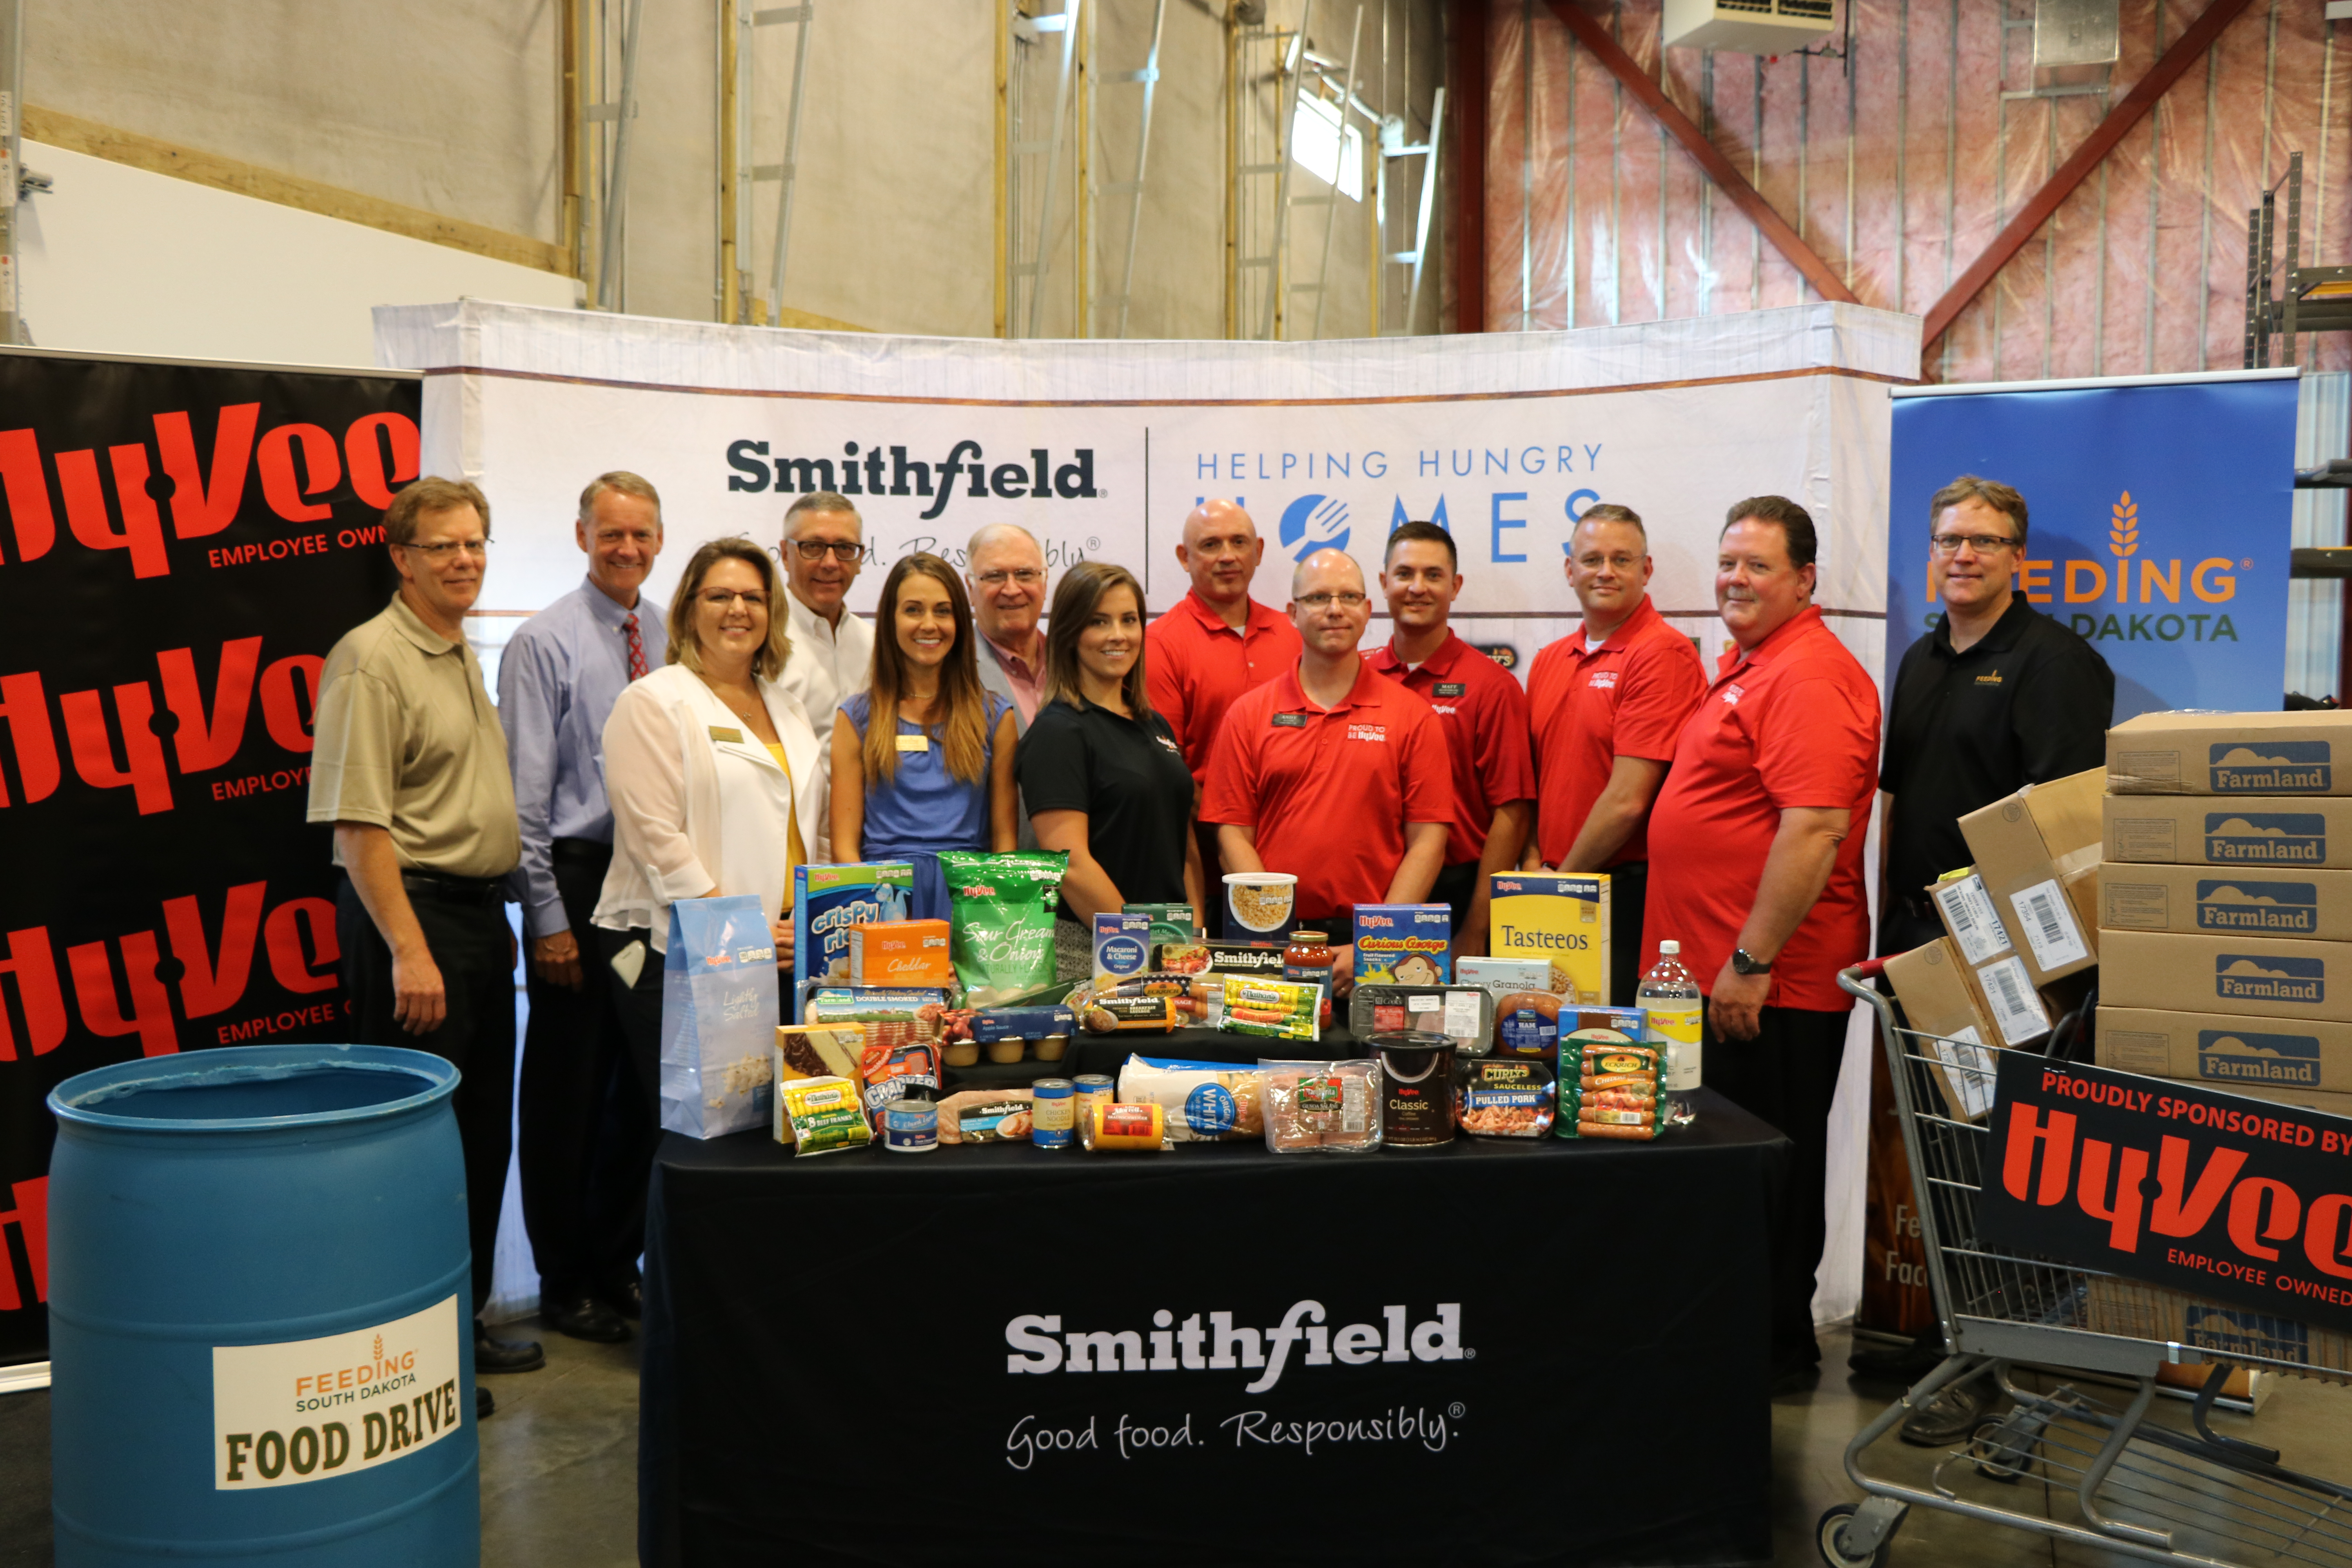 Smithfield Foods partner with Hy-Vee to donate more than 35,000 pounds of protein